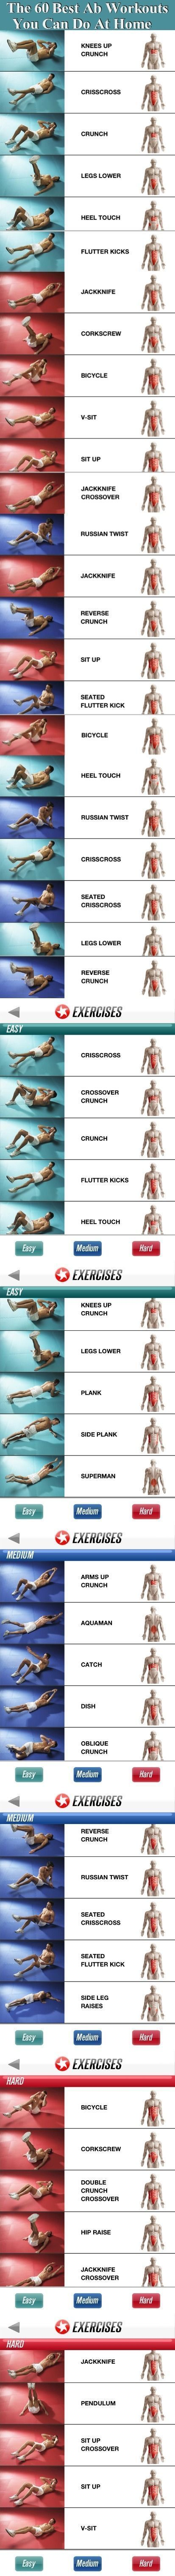 Best Ab Exercises with Bar Brothers or Who? https://fatdiminisherreallywork.wordpress.com/2017/05/28/best-ab-exercises-with-bar-brothers-or-who/